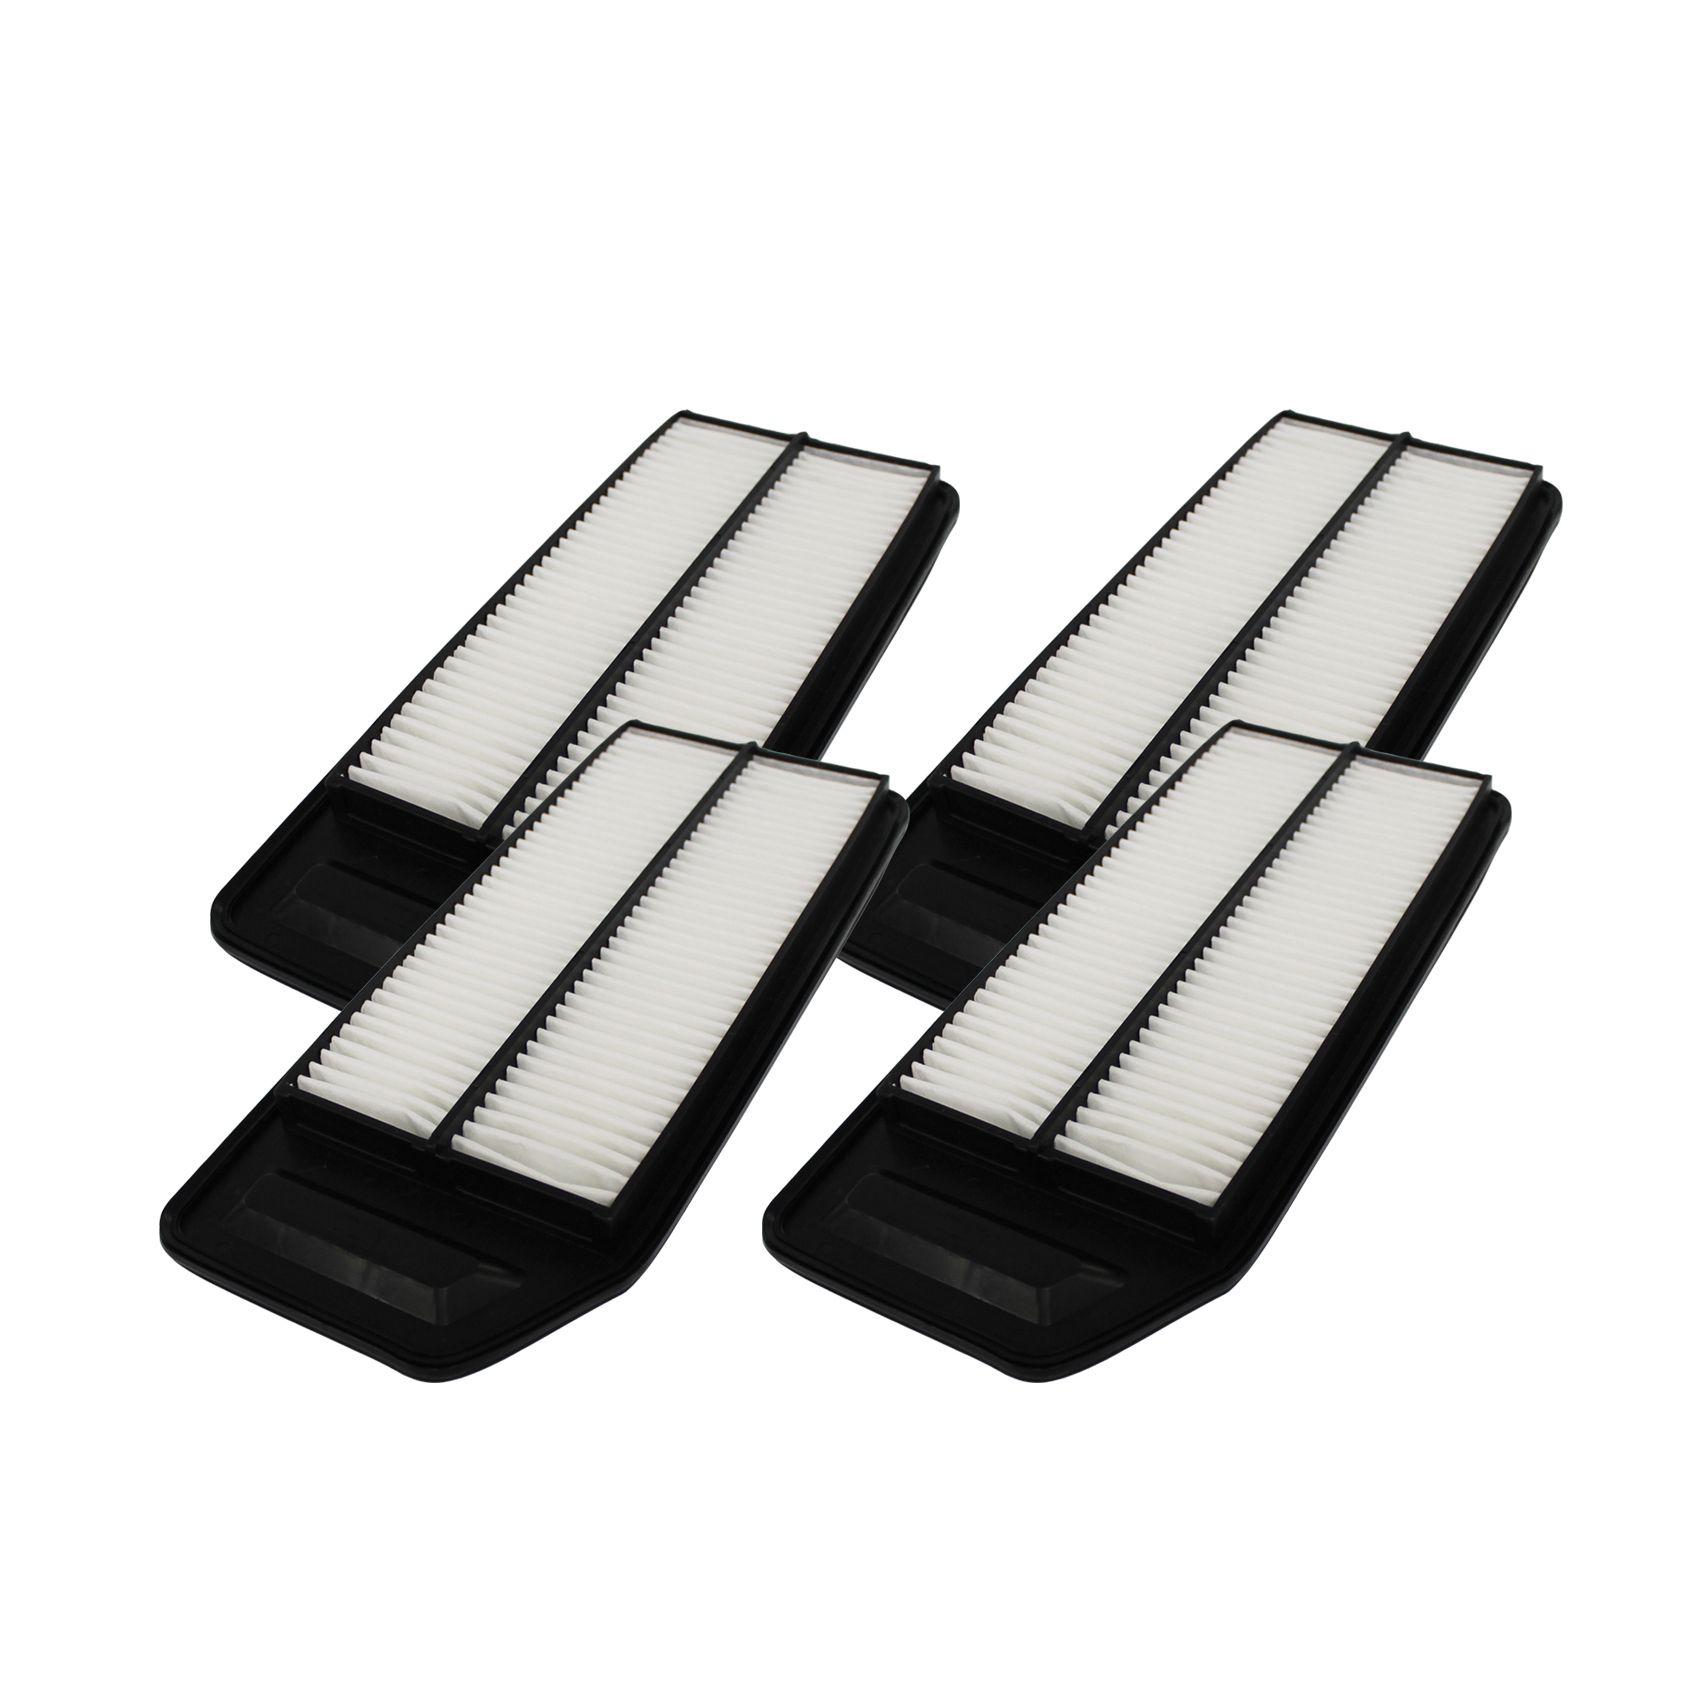 Crucial 4 Rigid Panel Air Filters Fit Acura And Honda